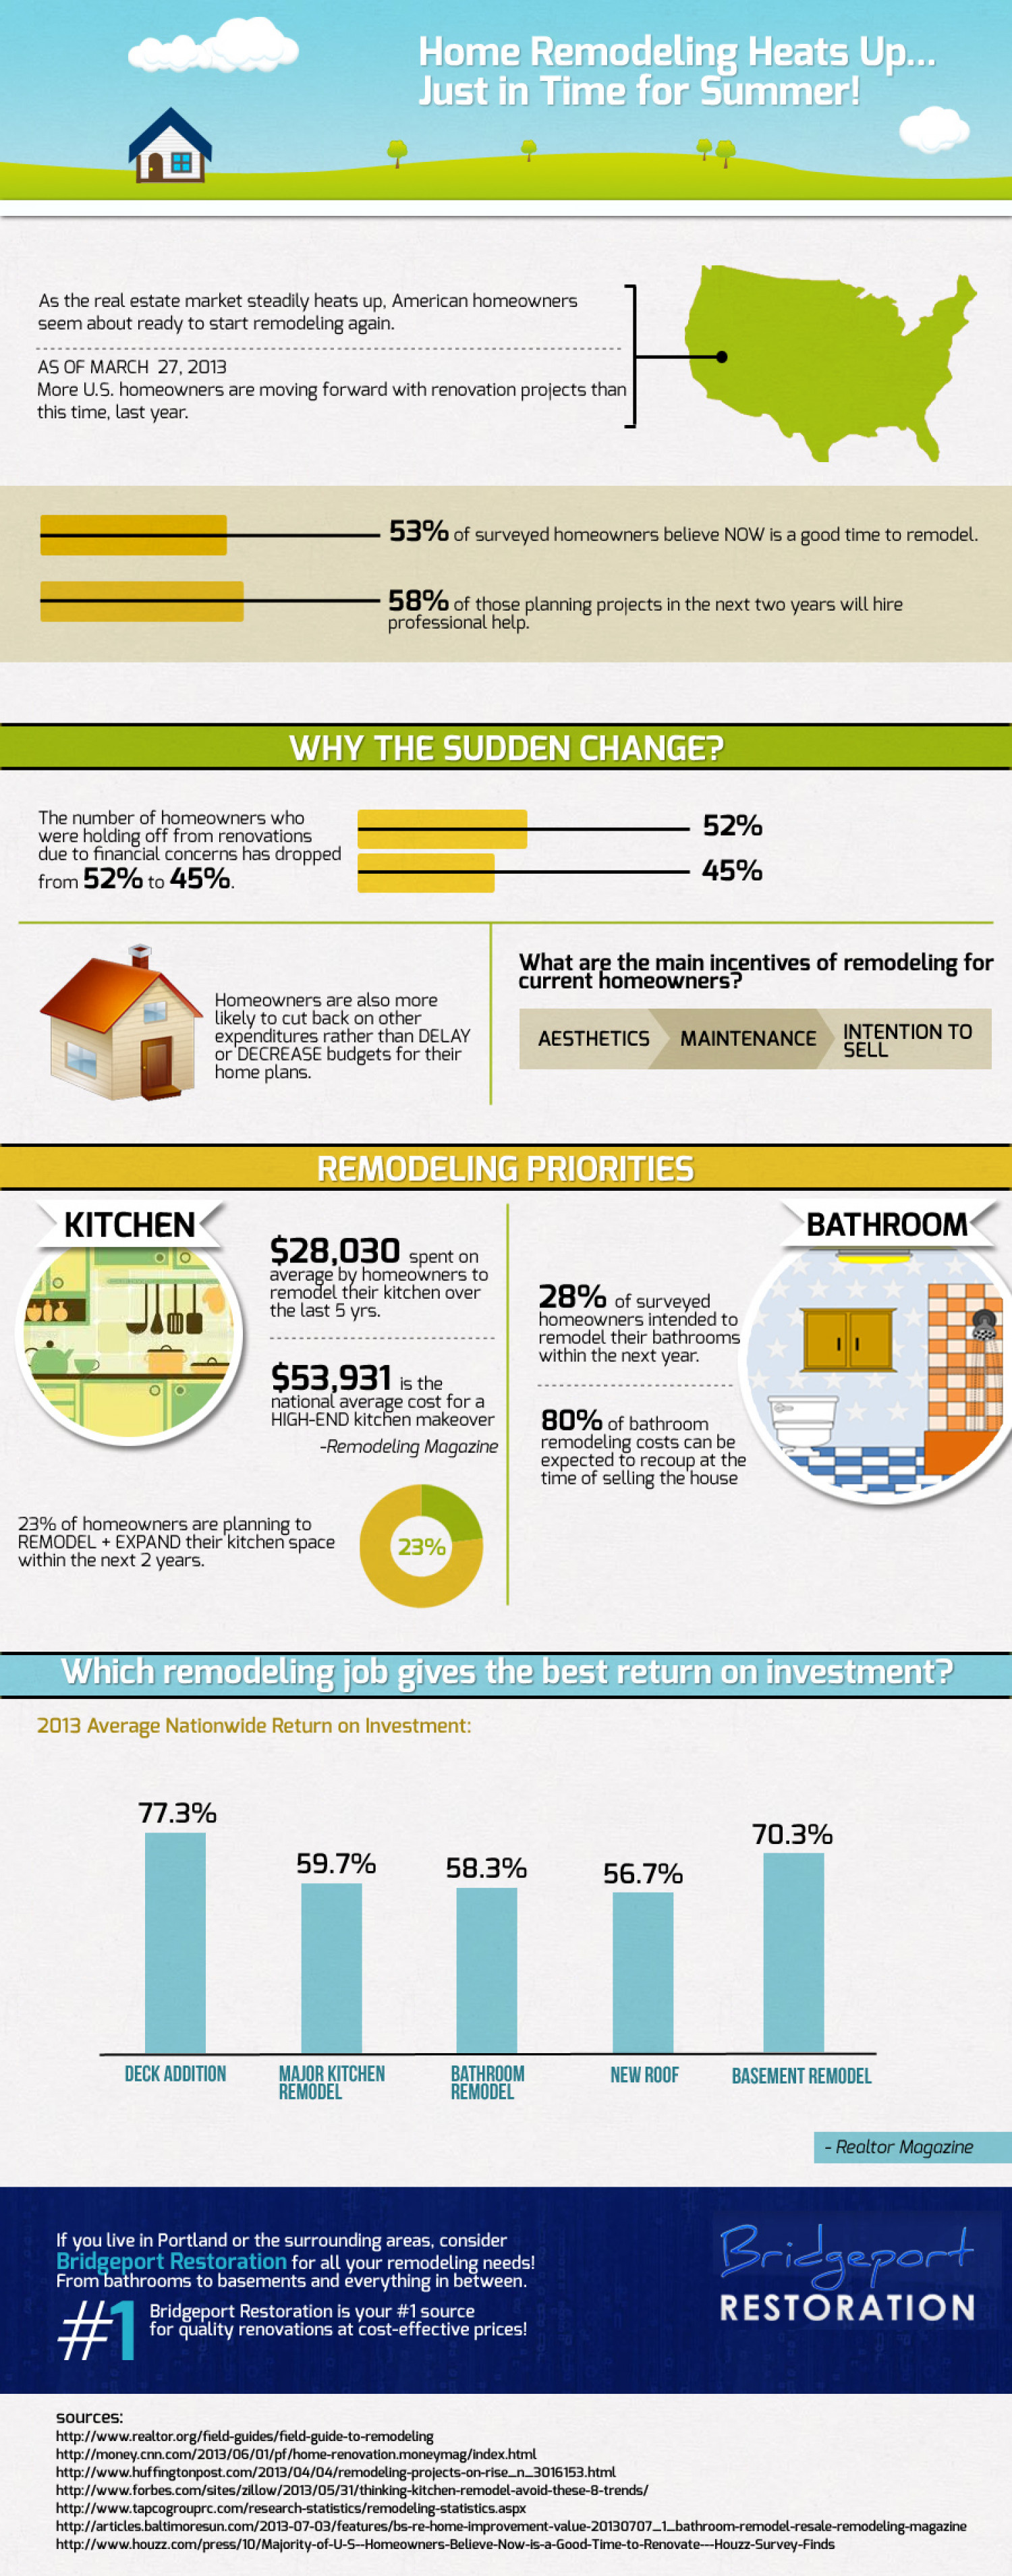 Home Remodeling Heats up... Infographic